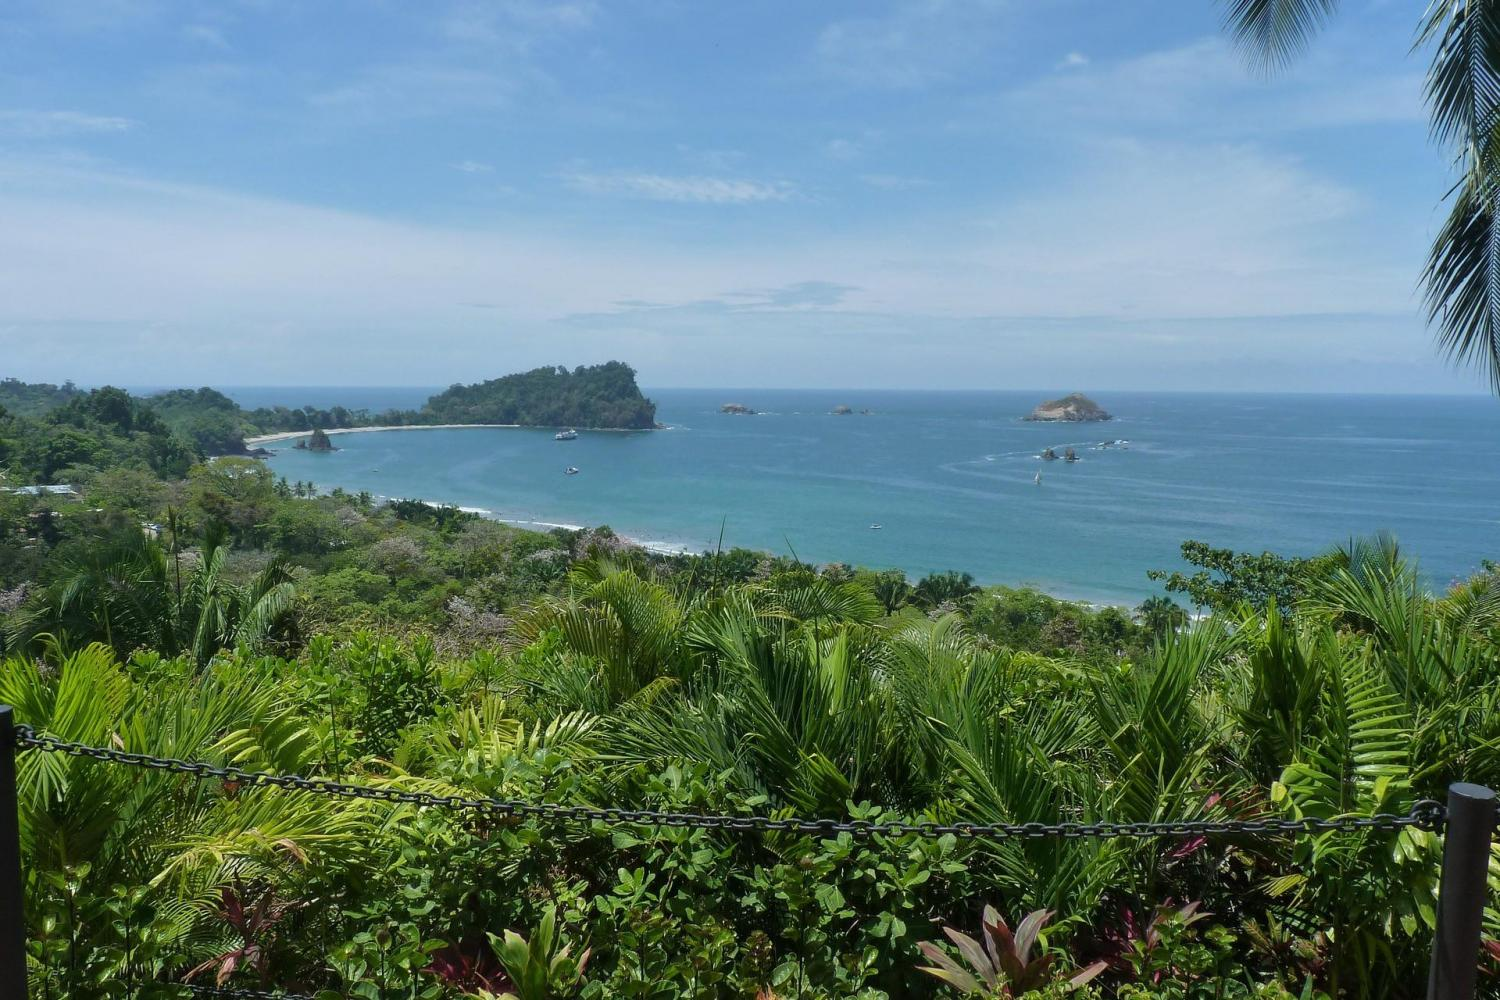 Explore Manuel Antonio National Park with it's magnificent beaches and wildlife